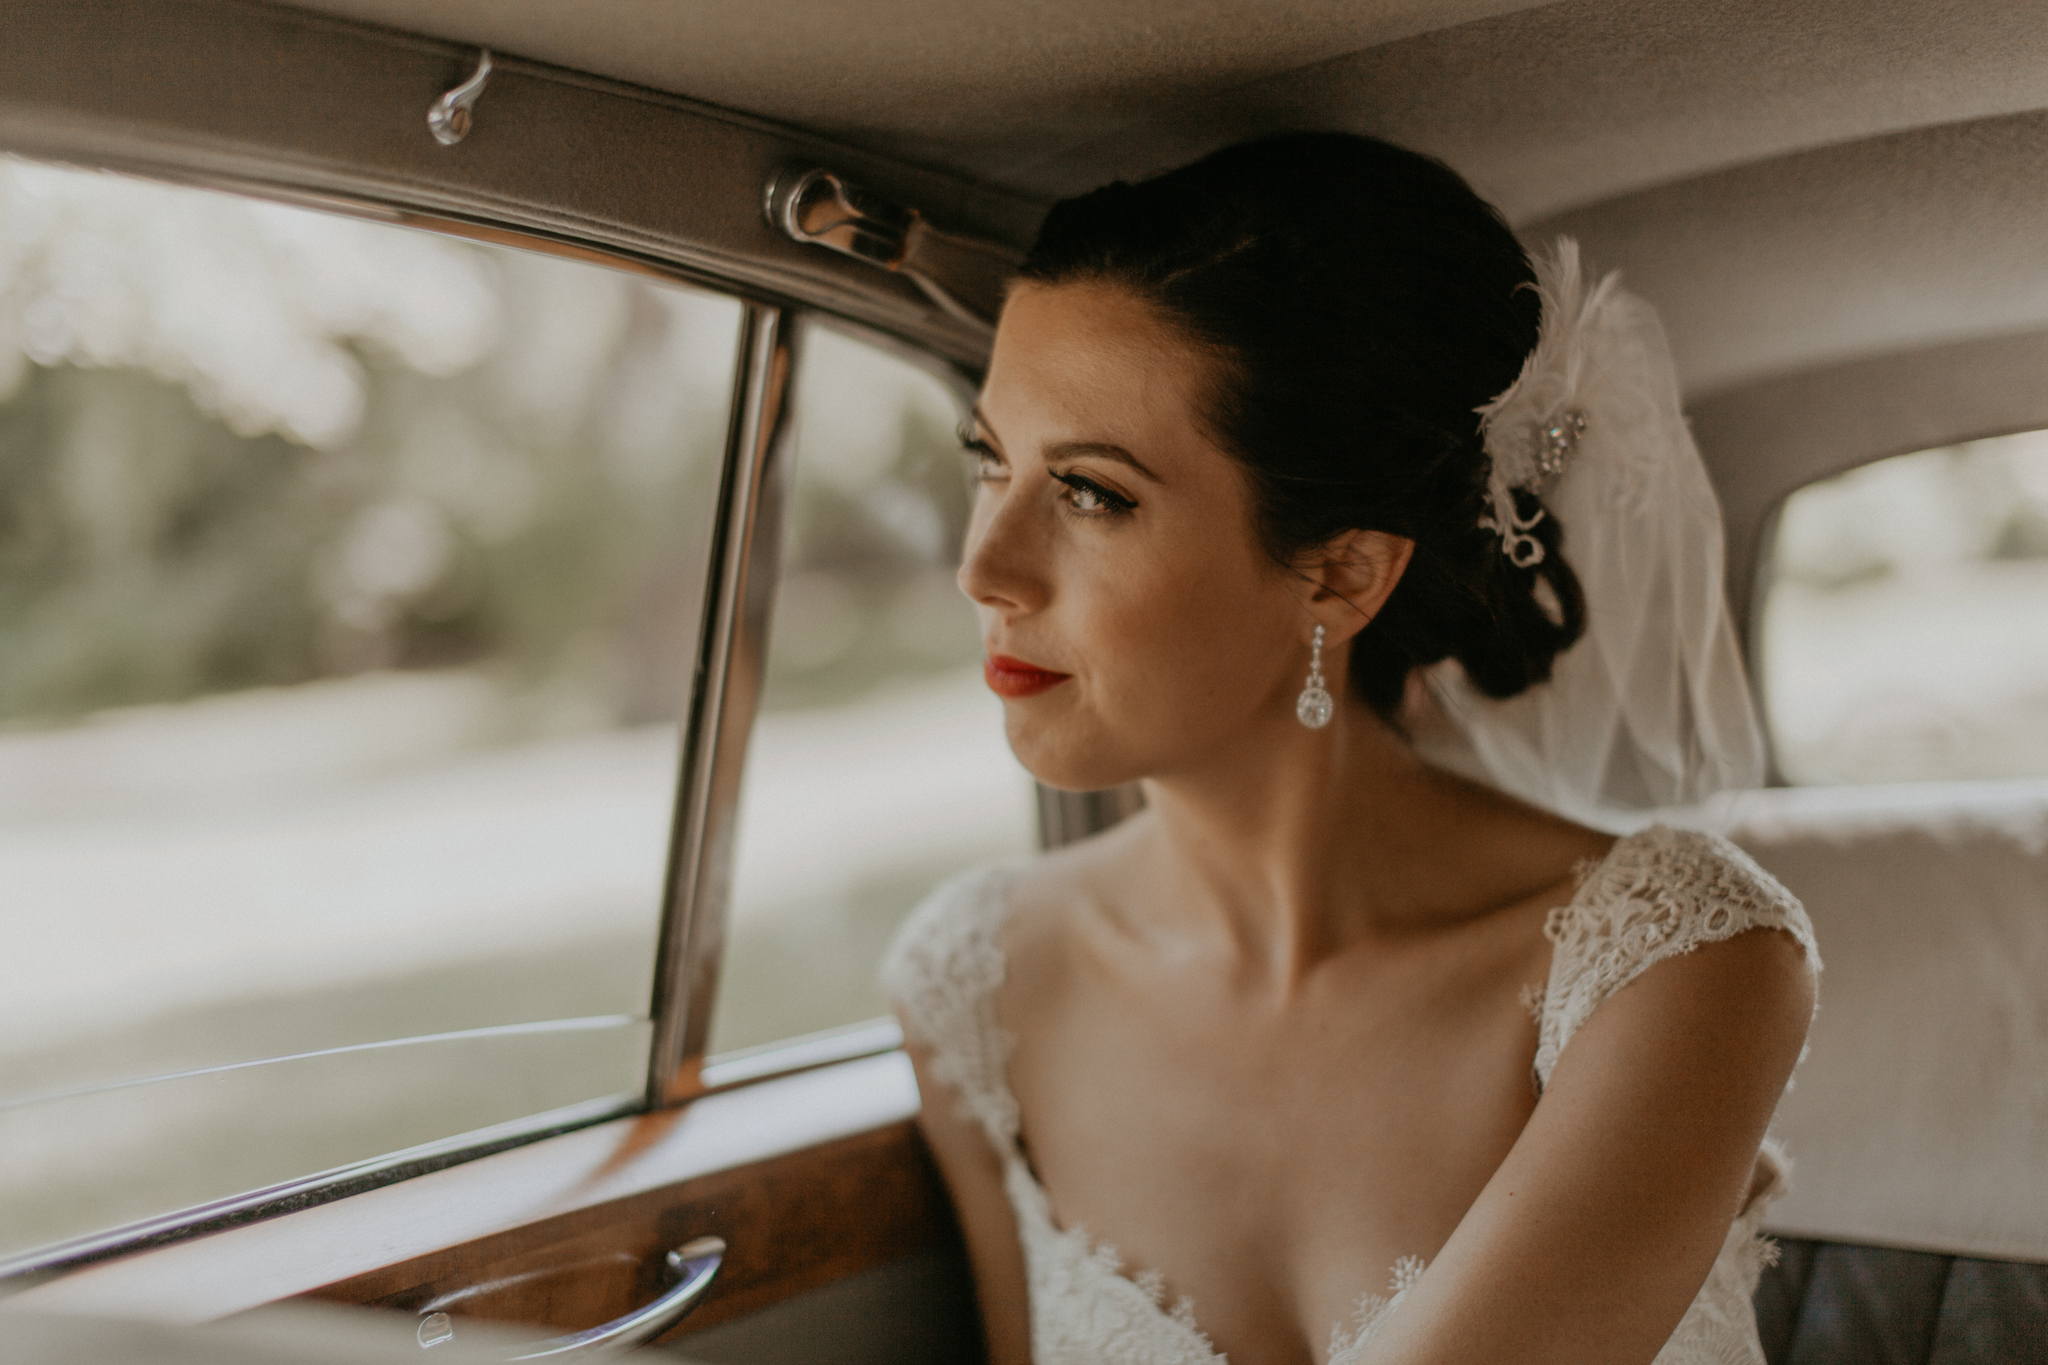 Candid documentary photo of bride riding in car